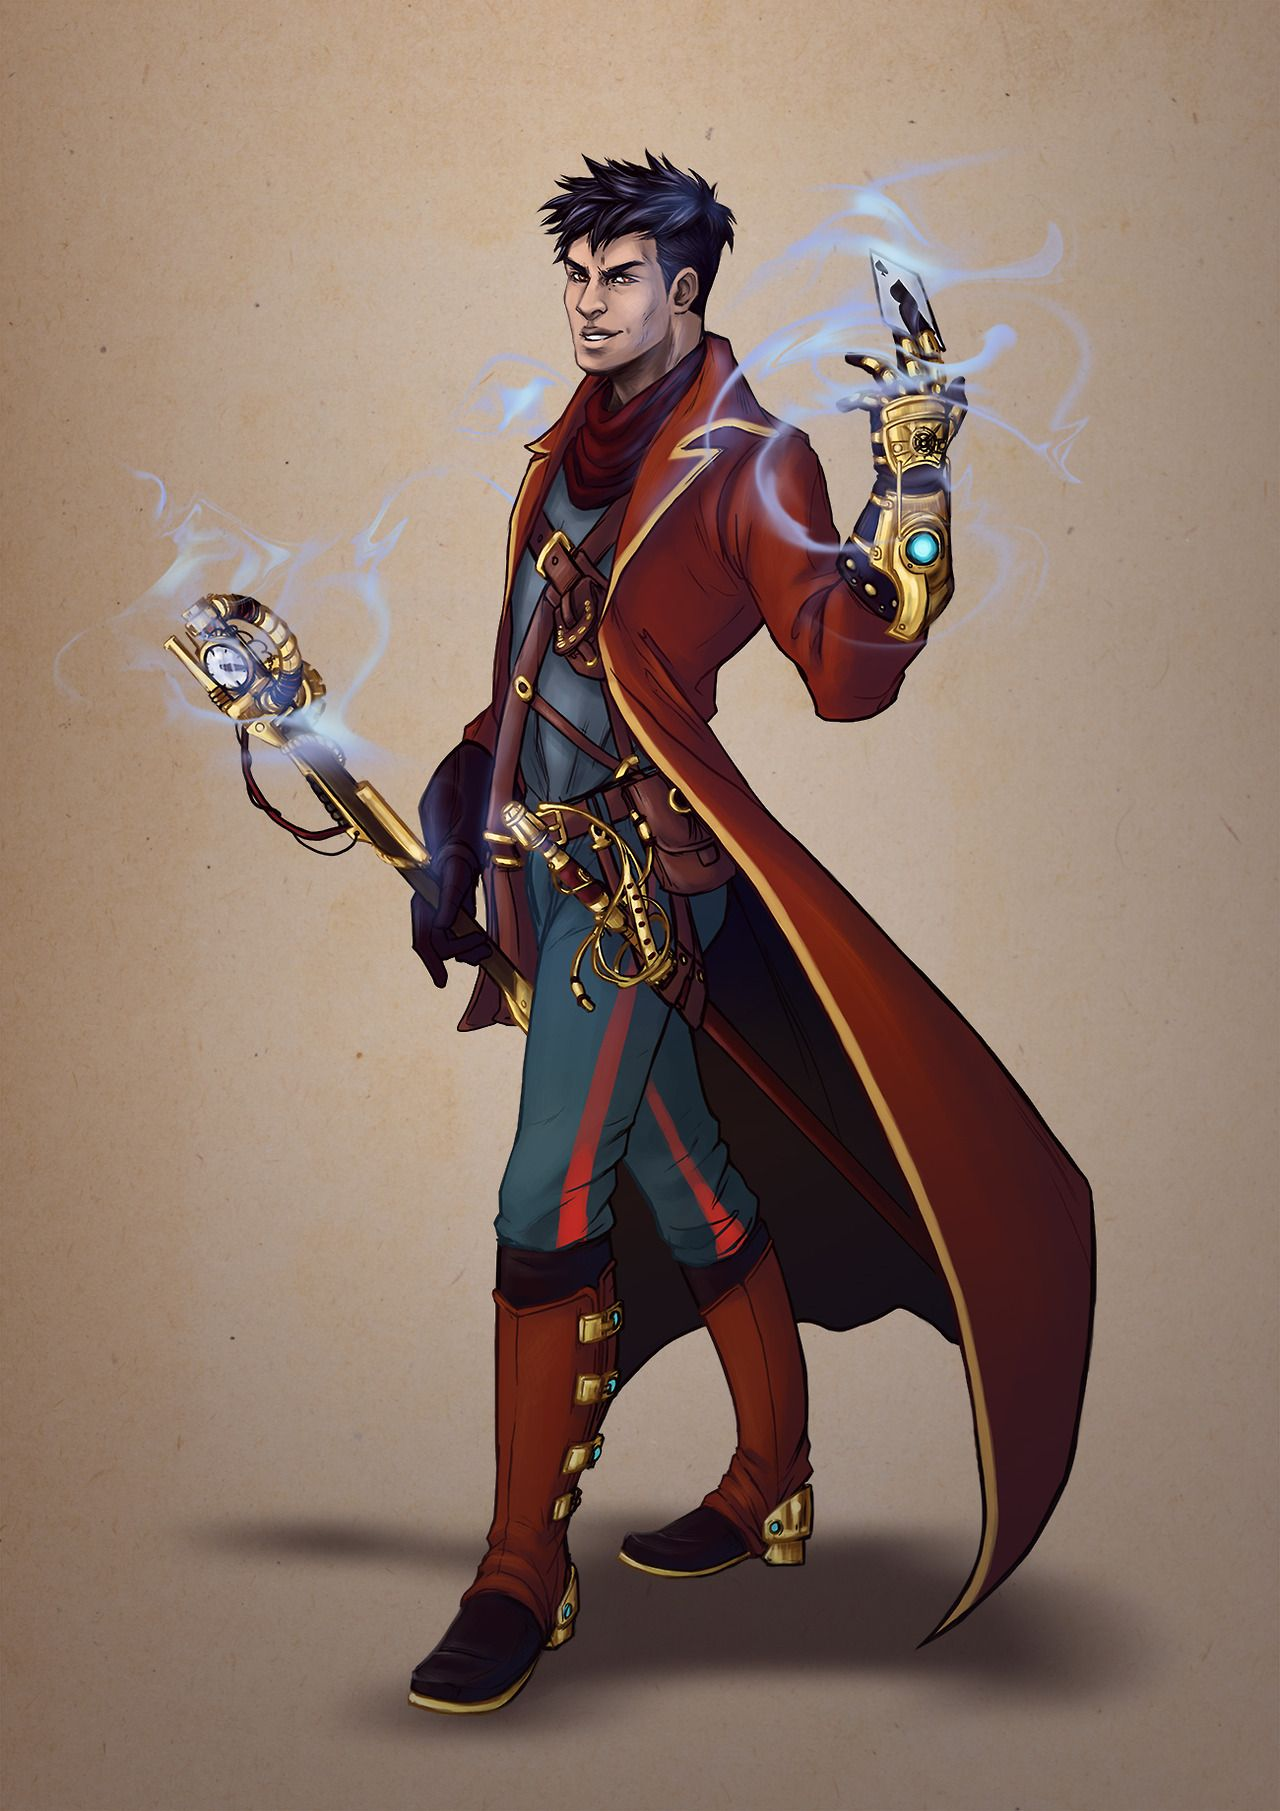 schaloime character design for a steampunk themed board